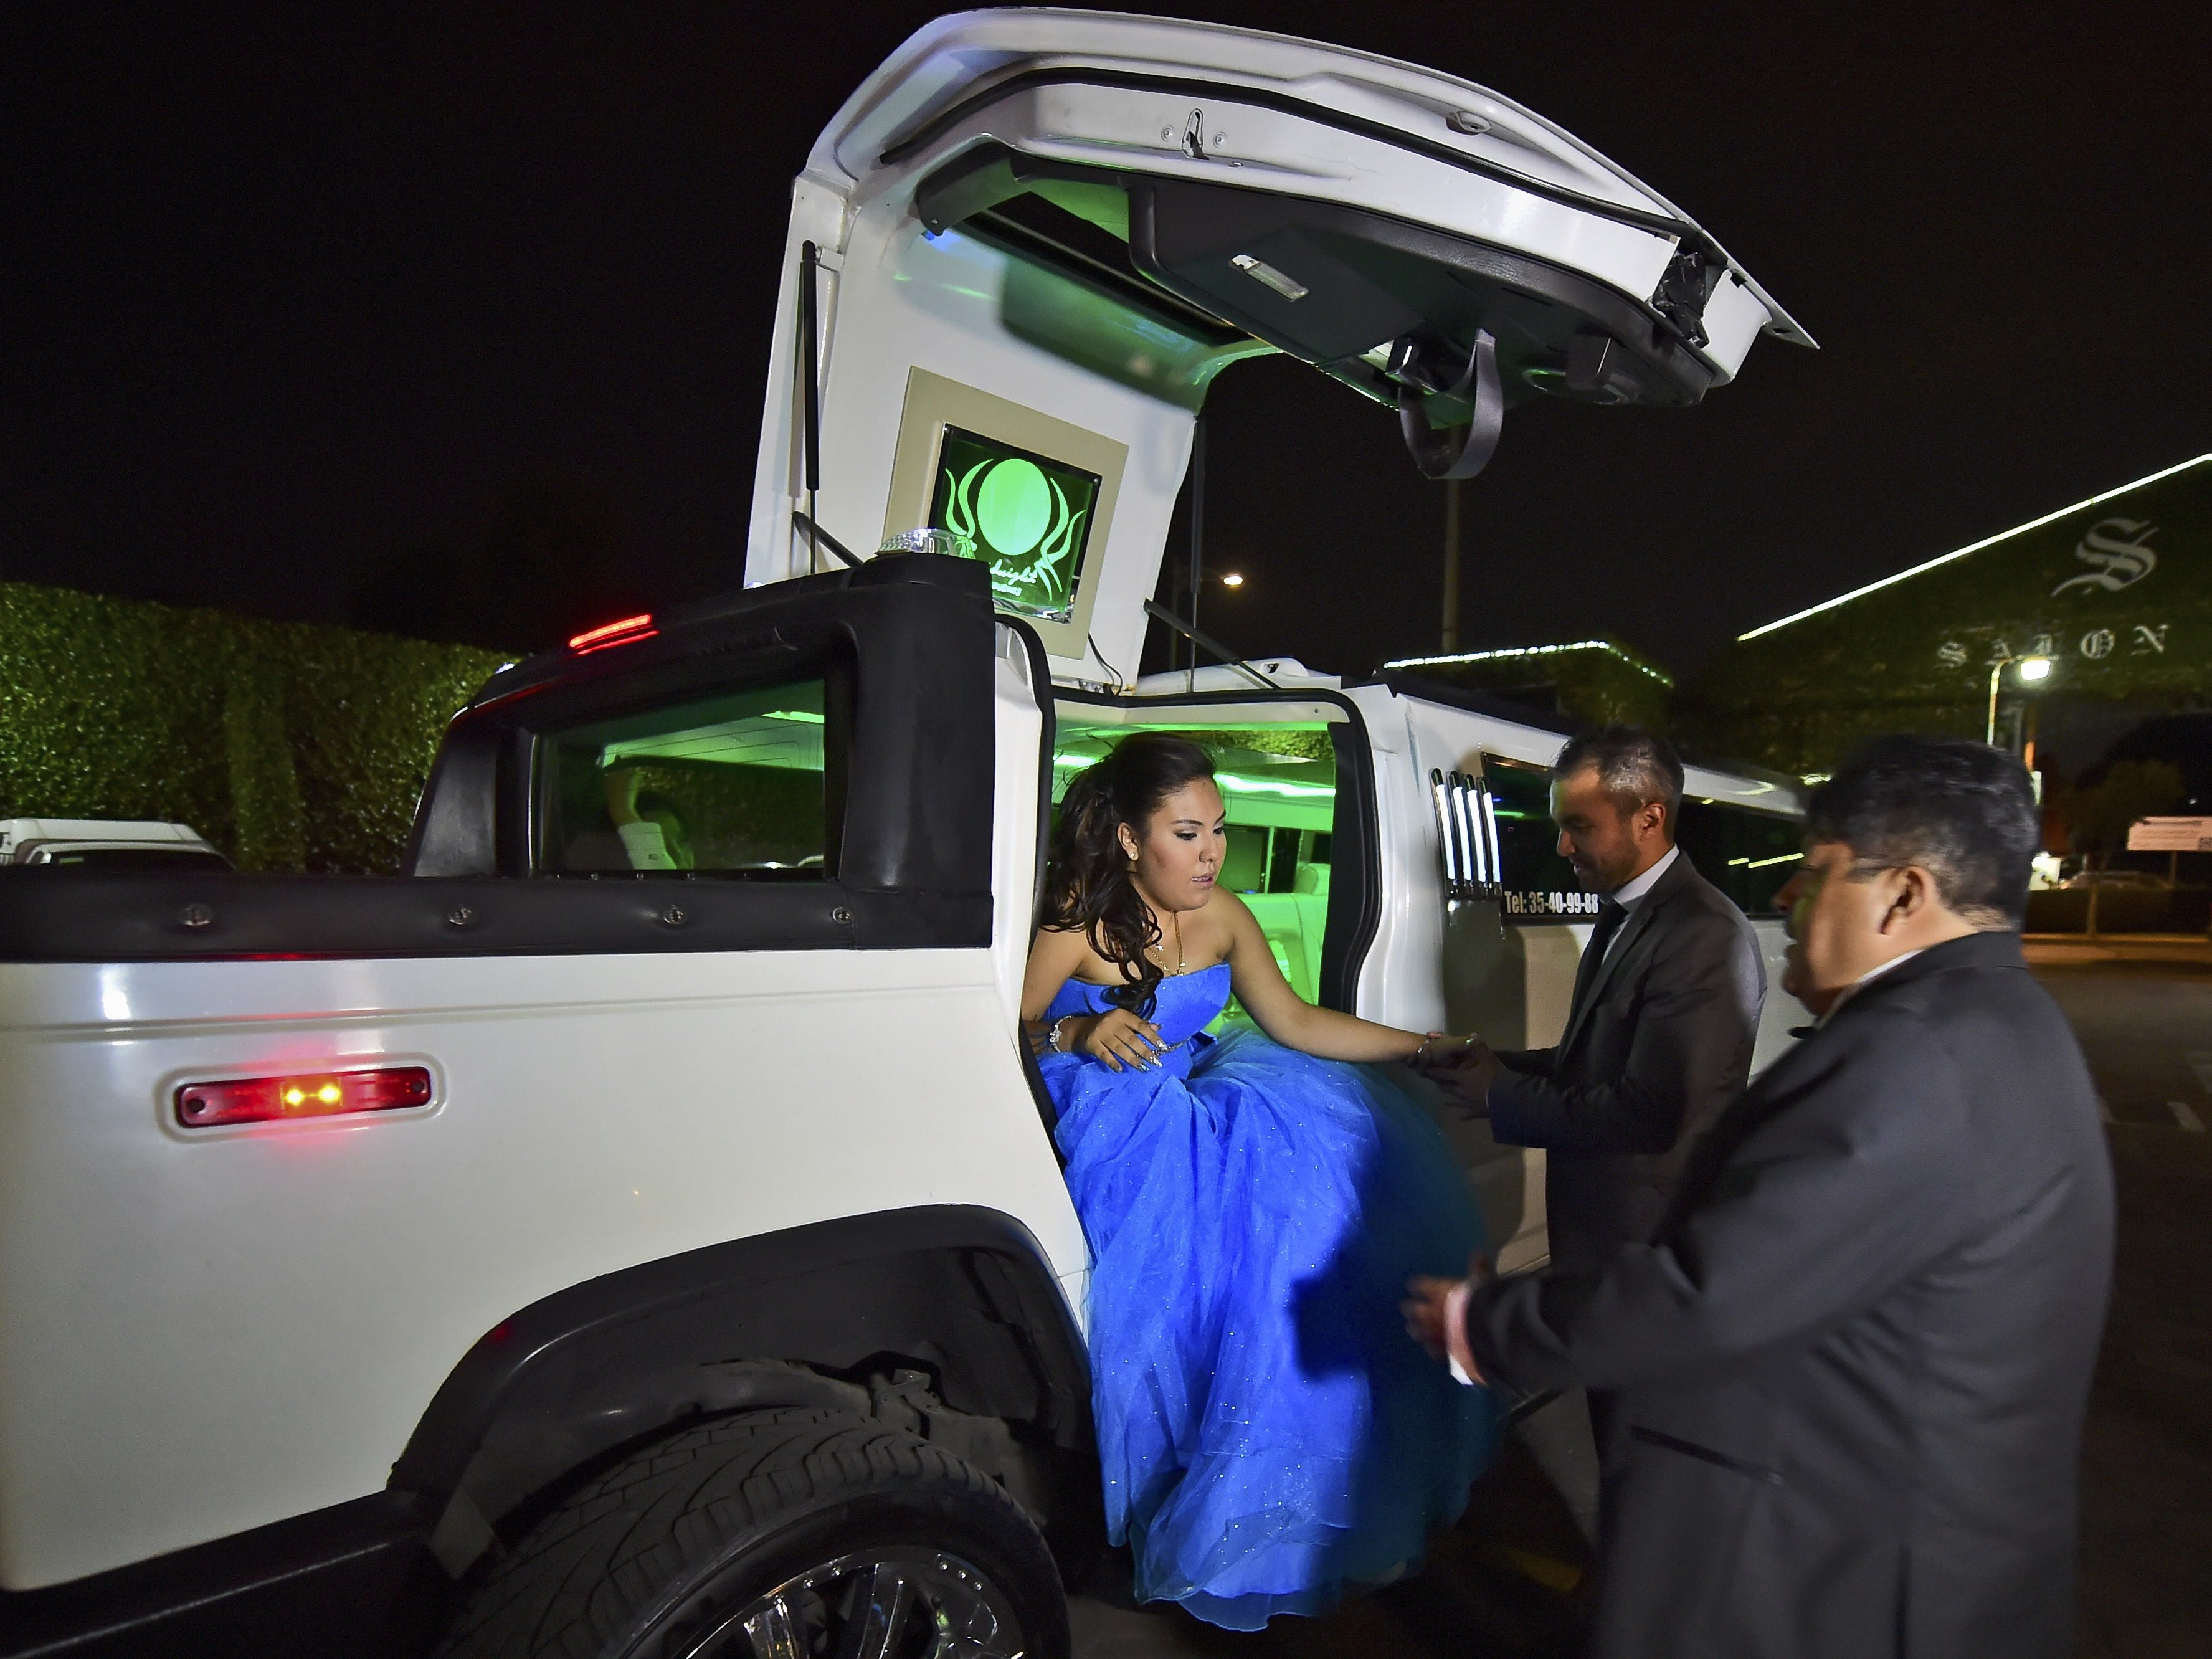 This limo arrives at a celebration celebration party in Mexico City, April 11, 2015.